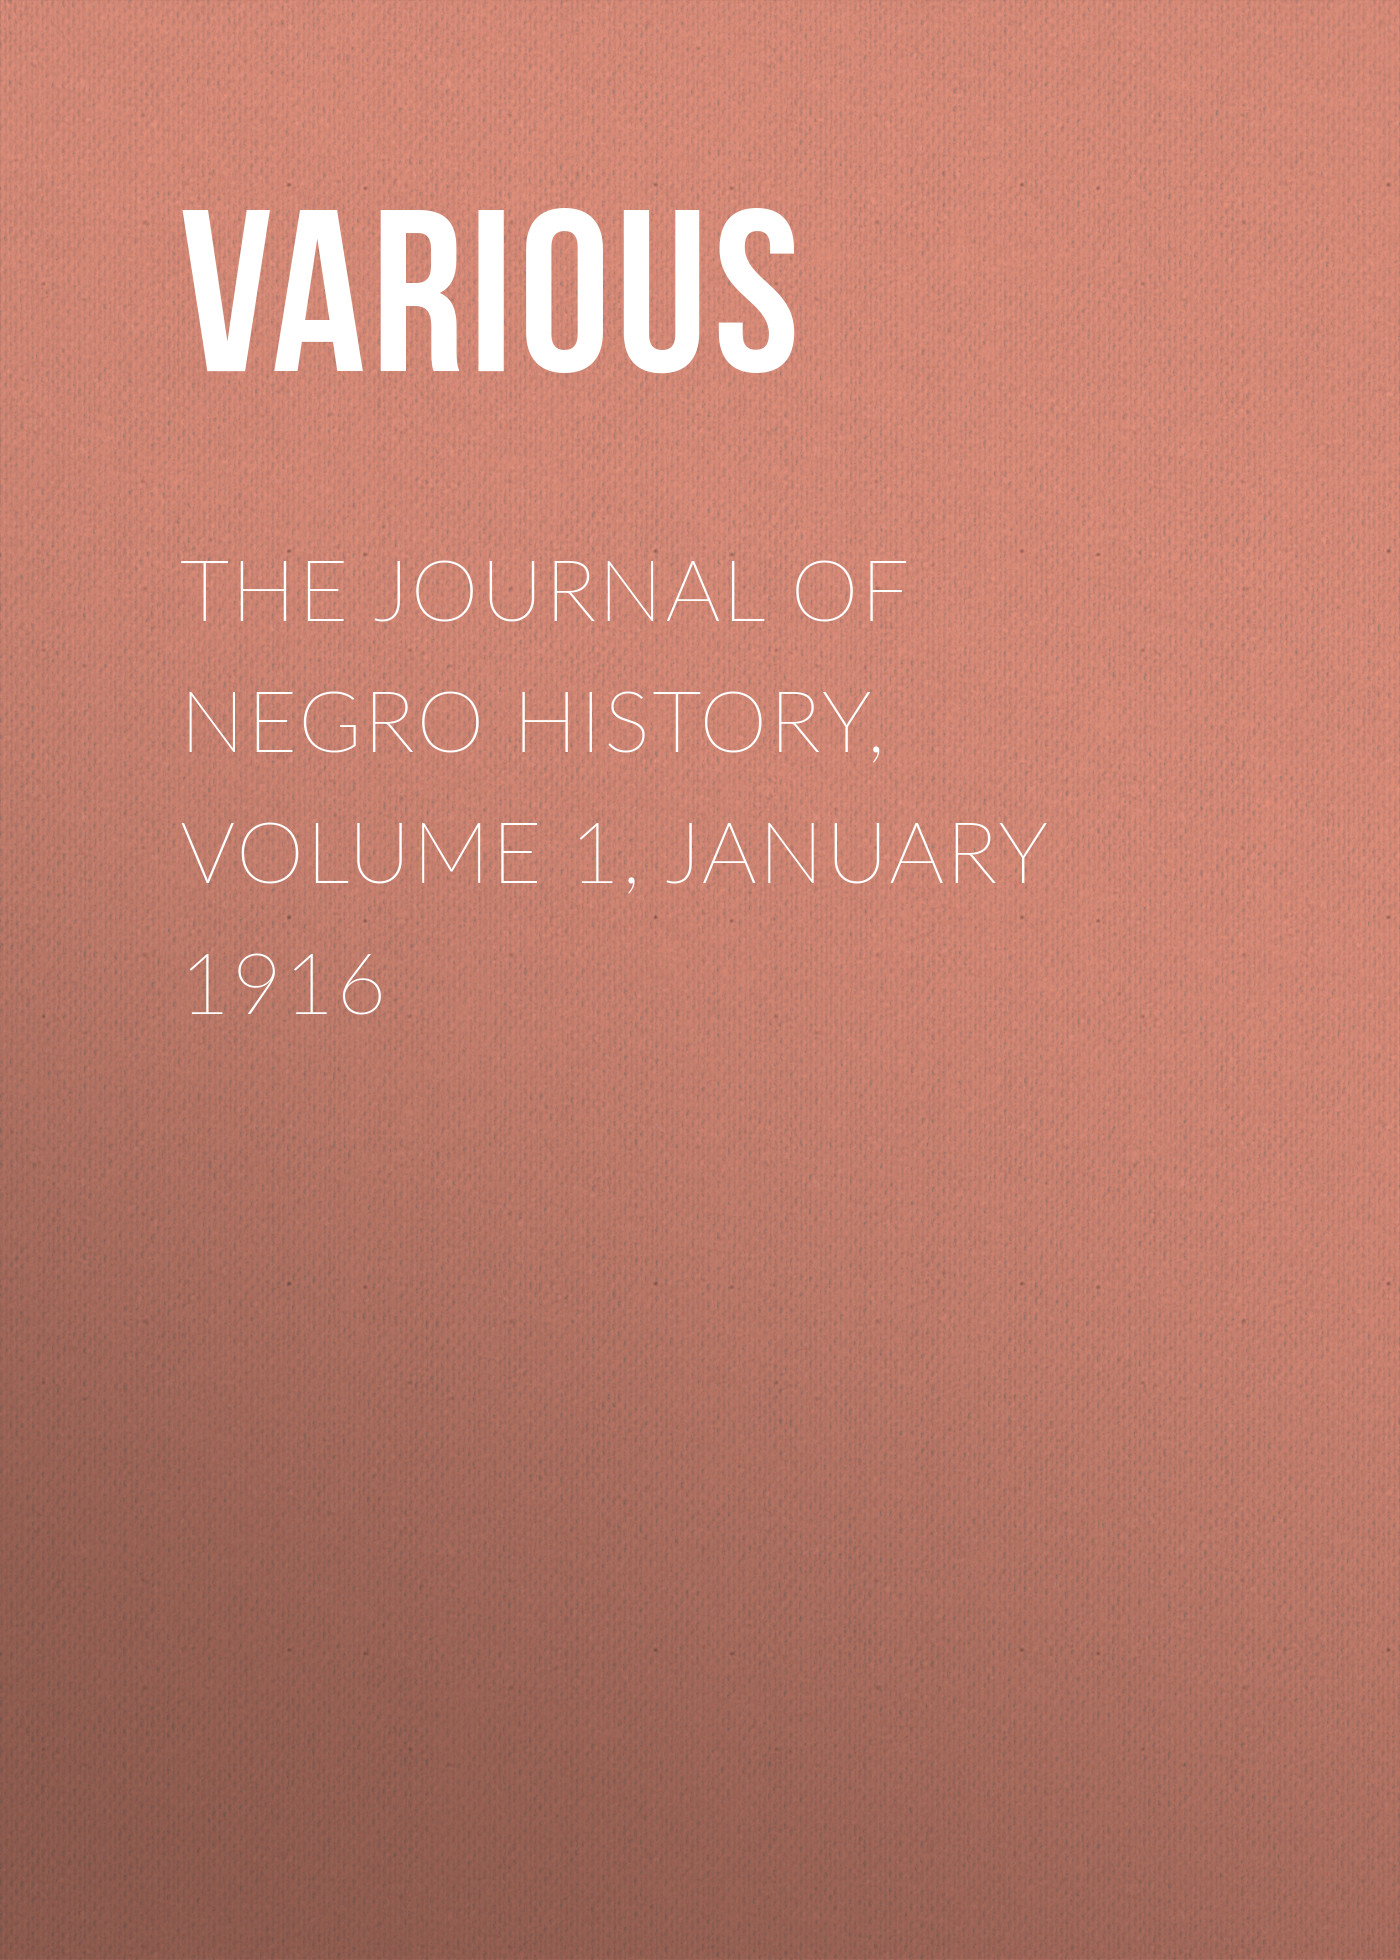 Various The Journal of Negro History, Volume 1, January 1916